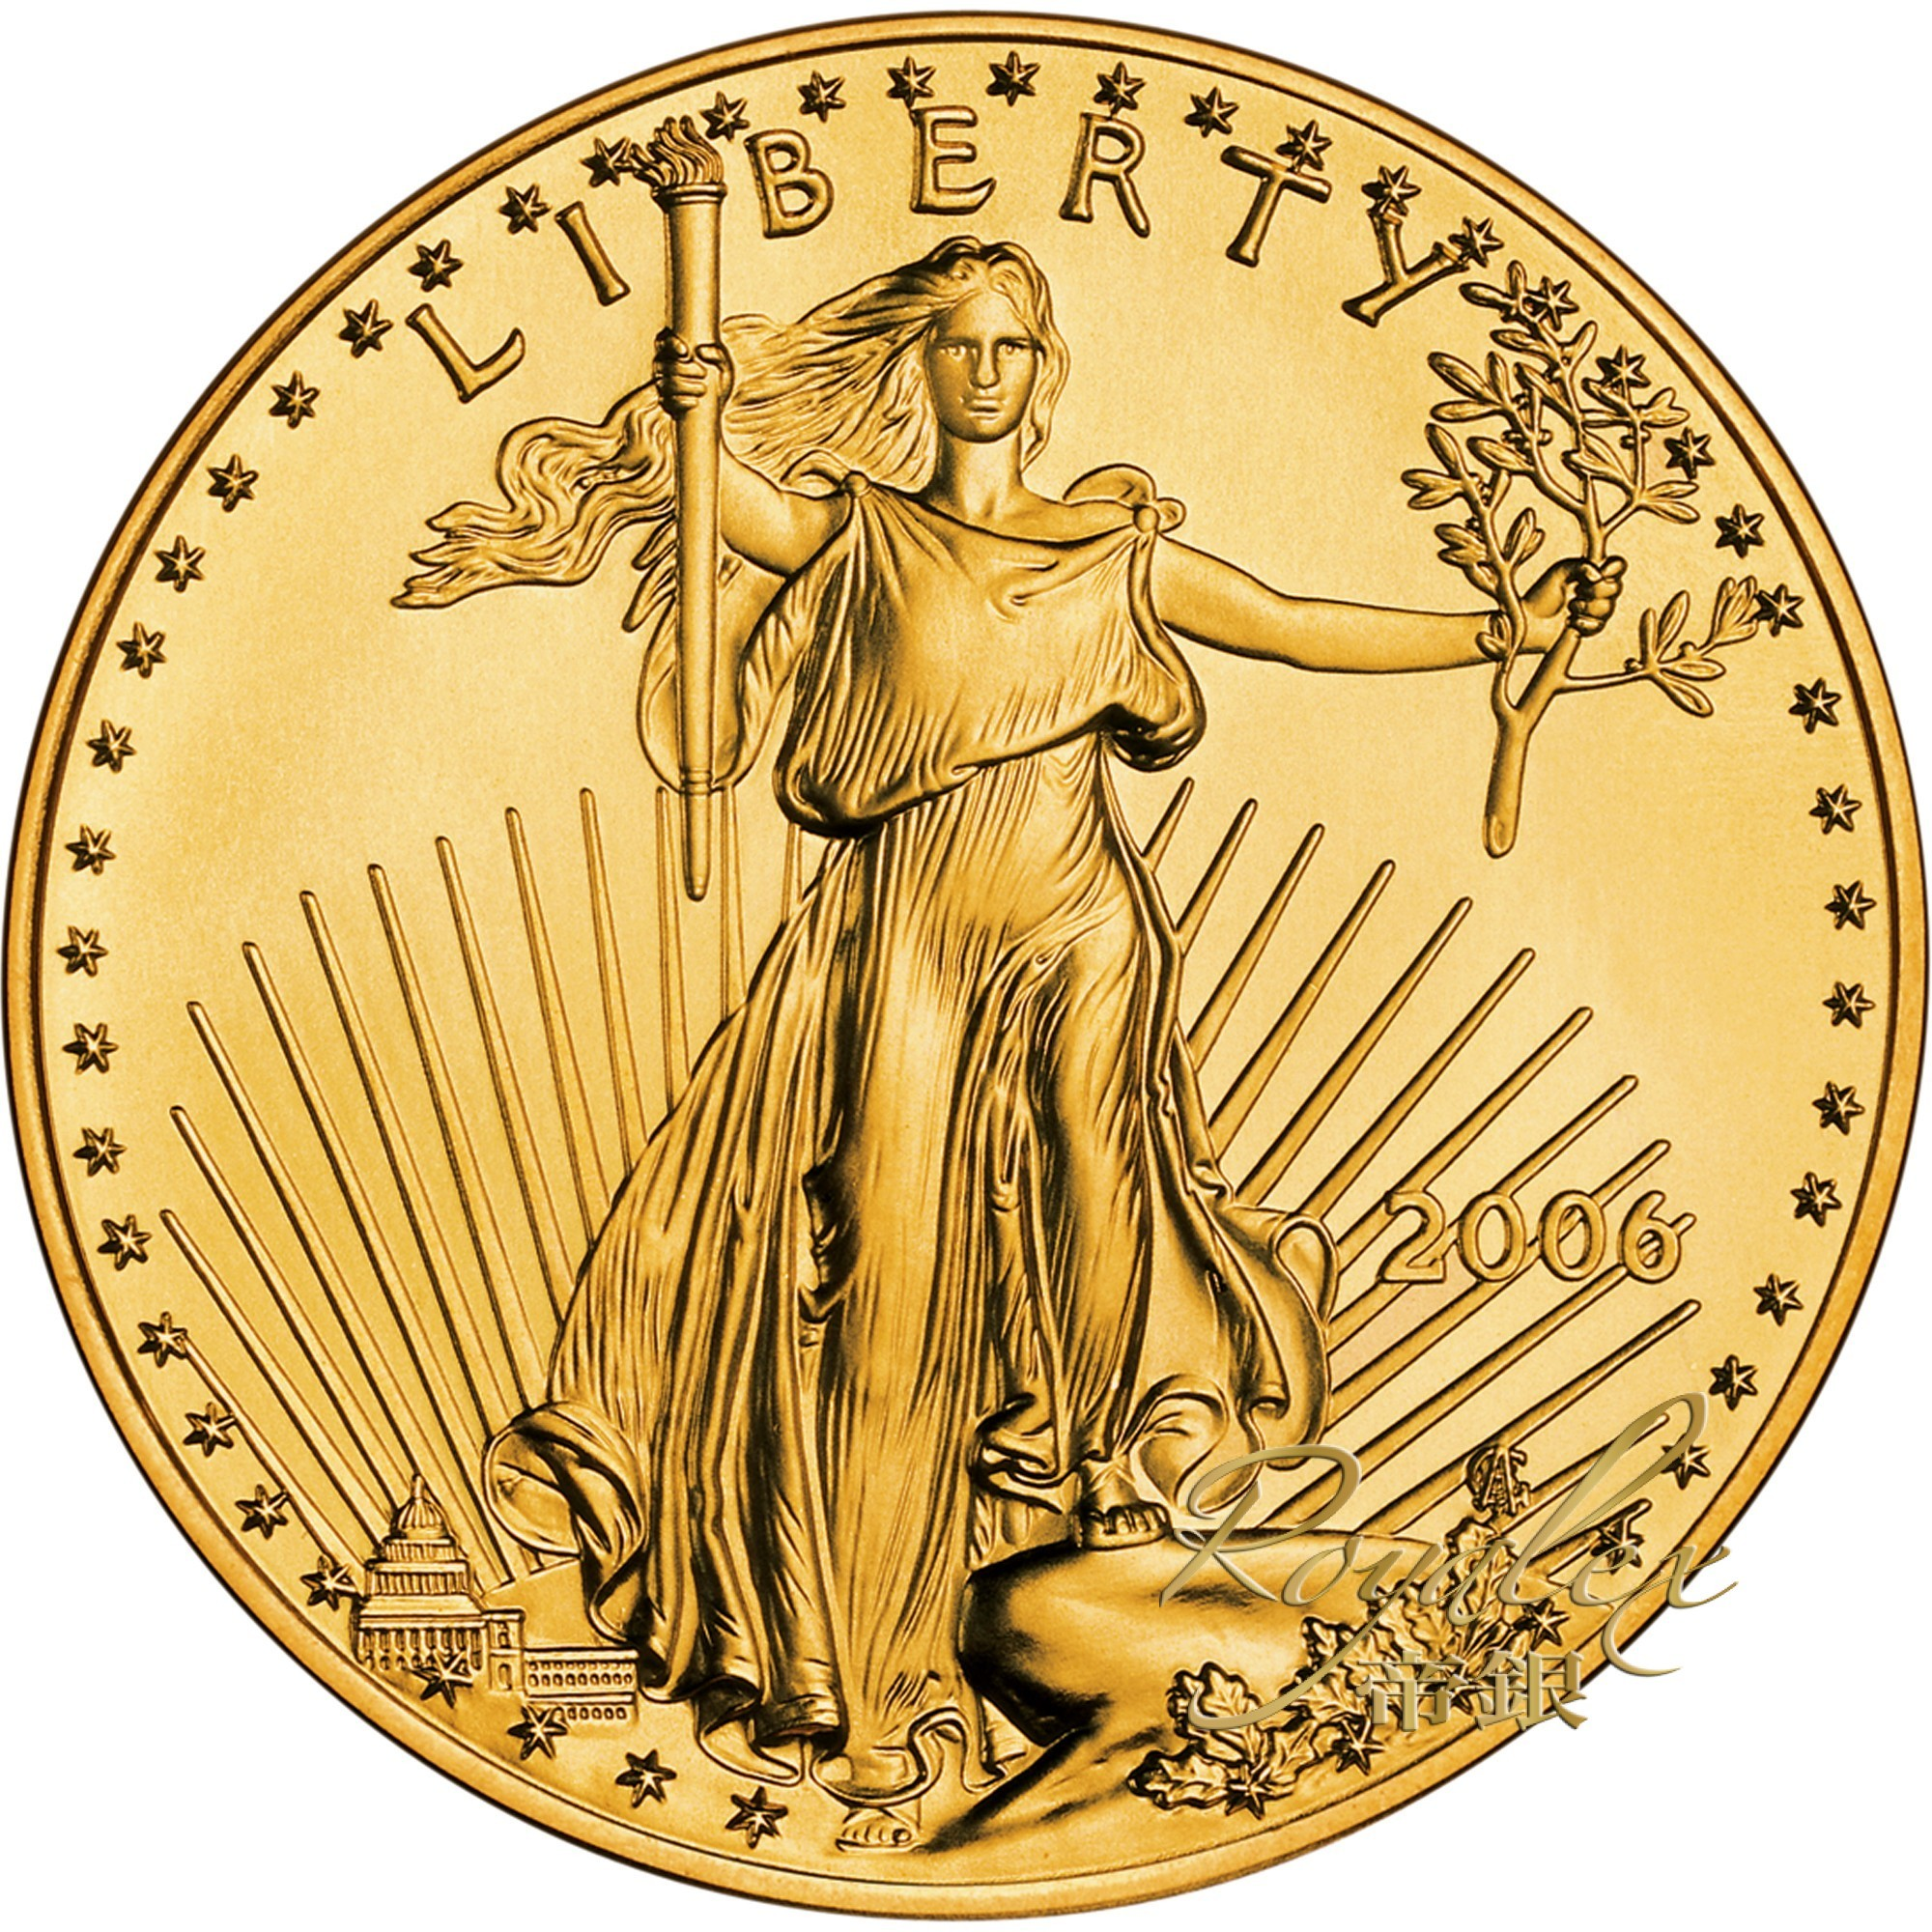 American 2006 Gold Eagle Ms69 1 Oz Royalexsilver